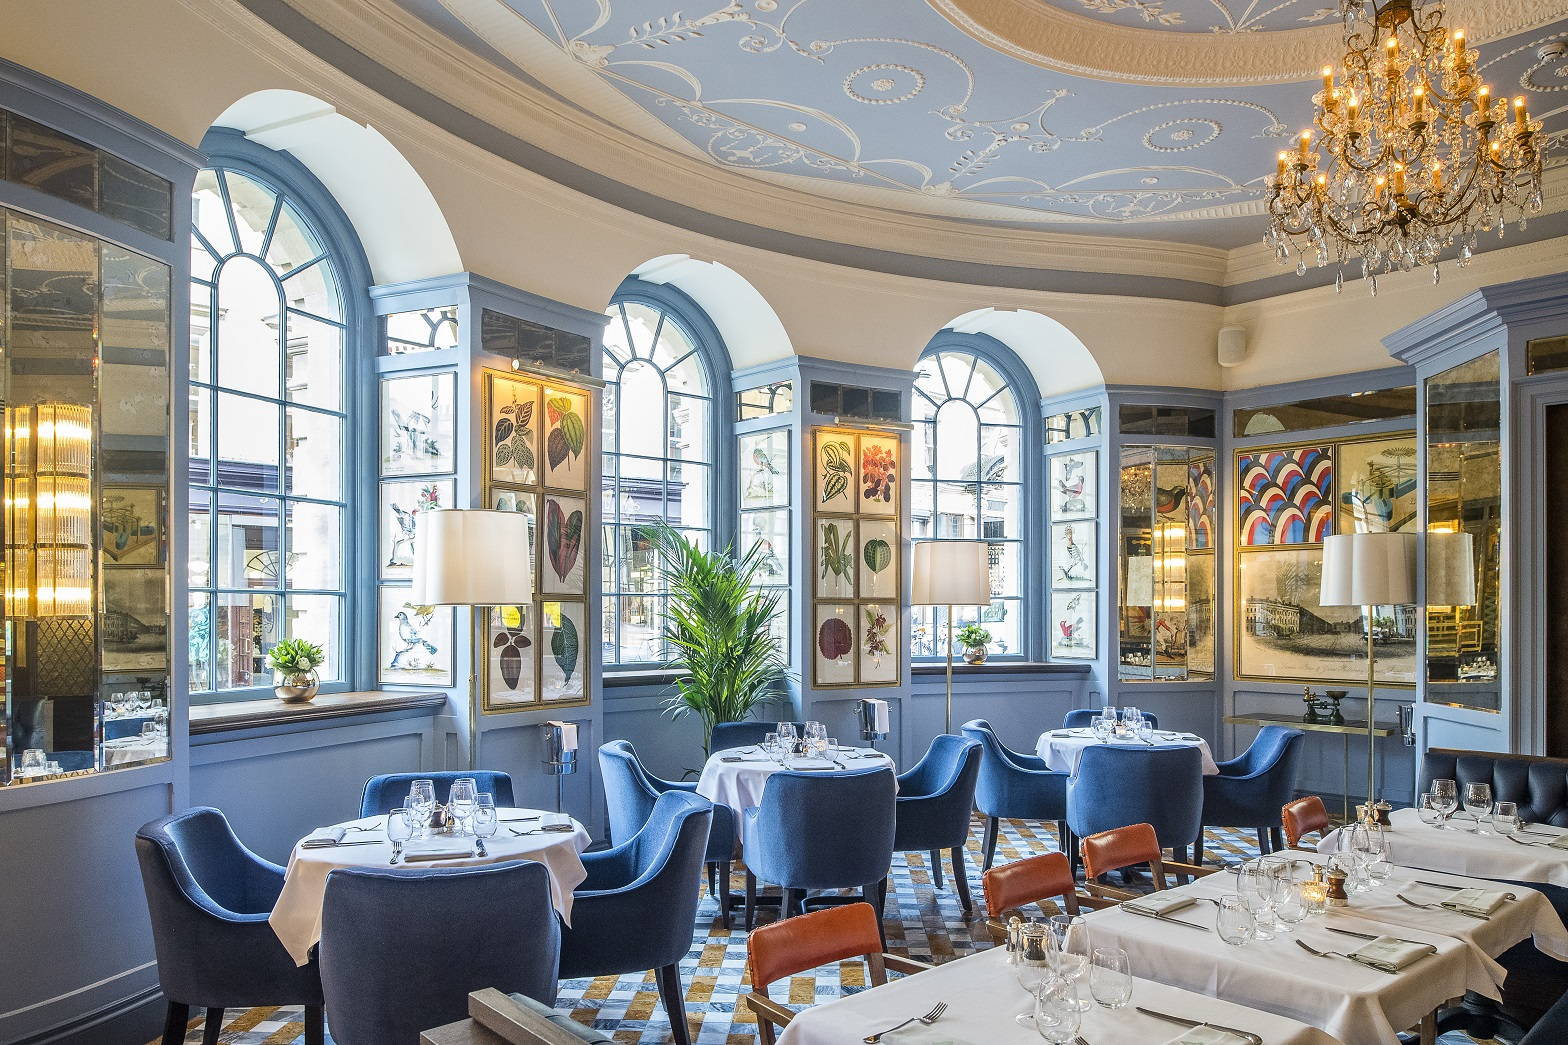 The Ivy Bath Brasserie Opens For Business The Business